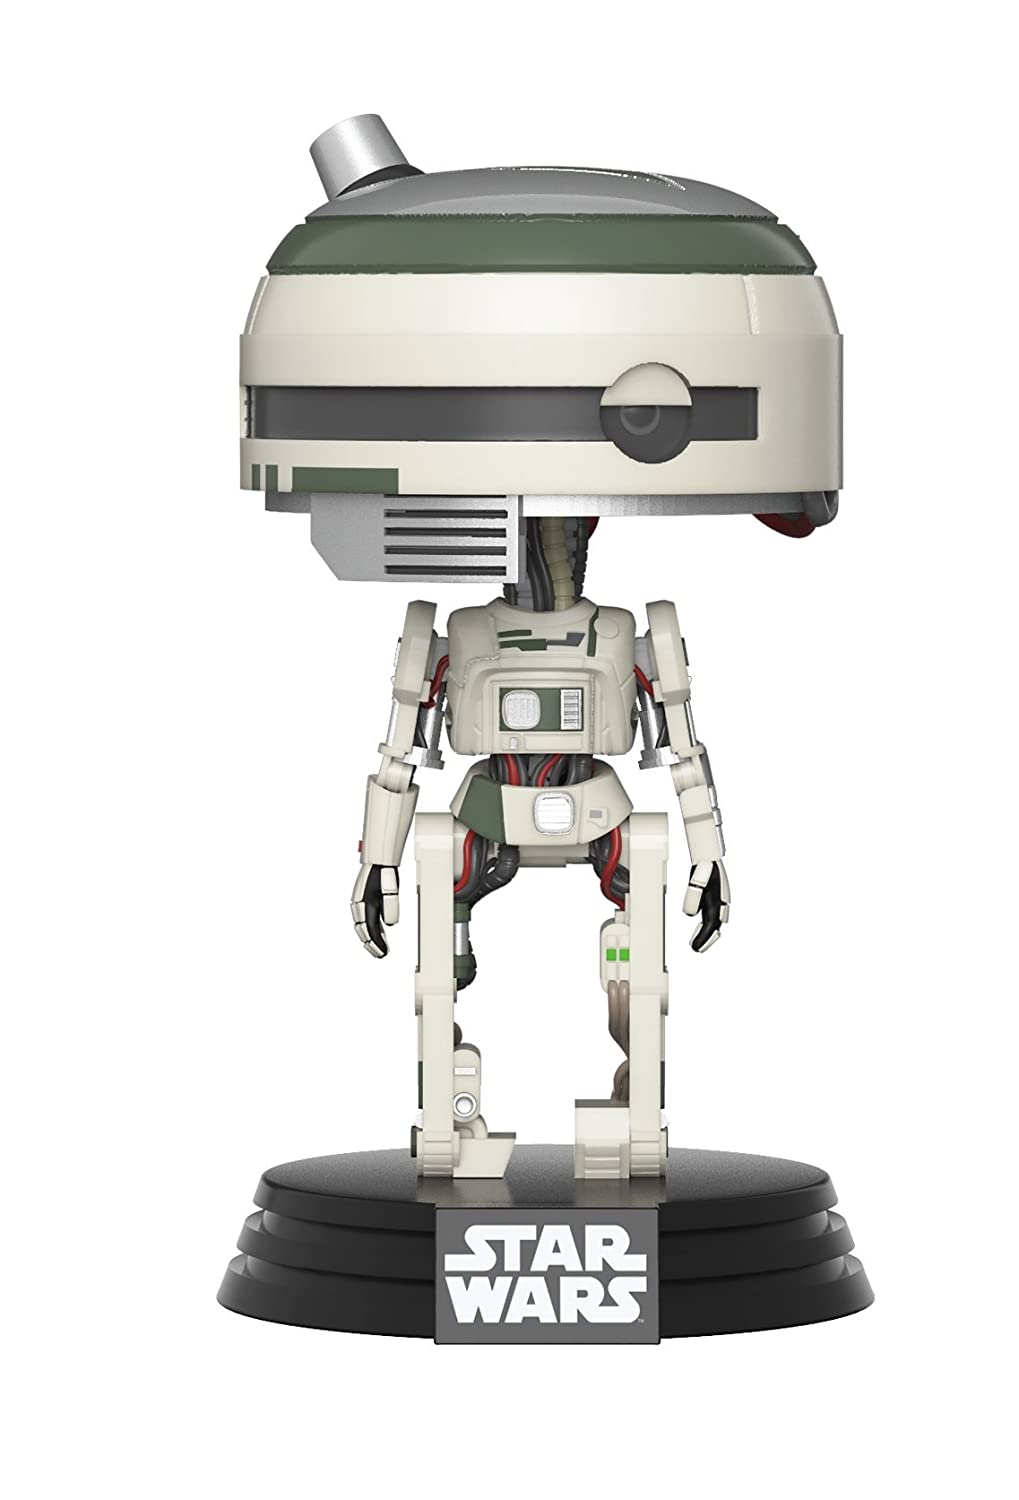 Funko Pop Star Wars: Solo L3 37 Collectible Figure, Multicolor by Fun Ko